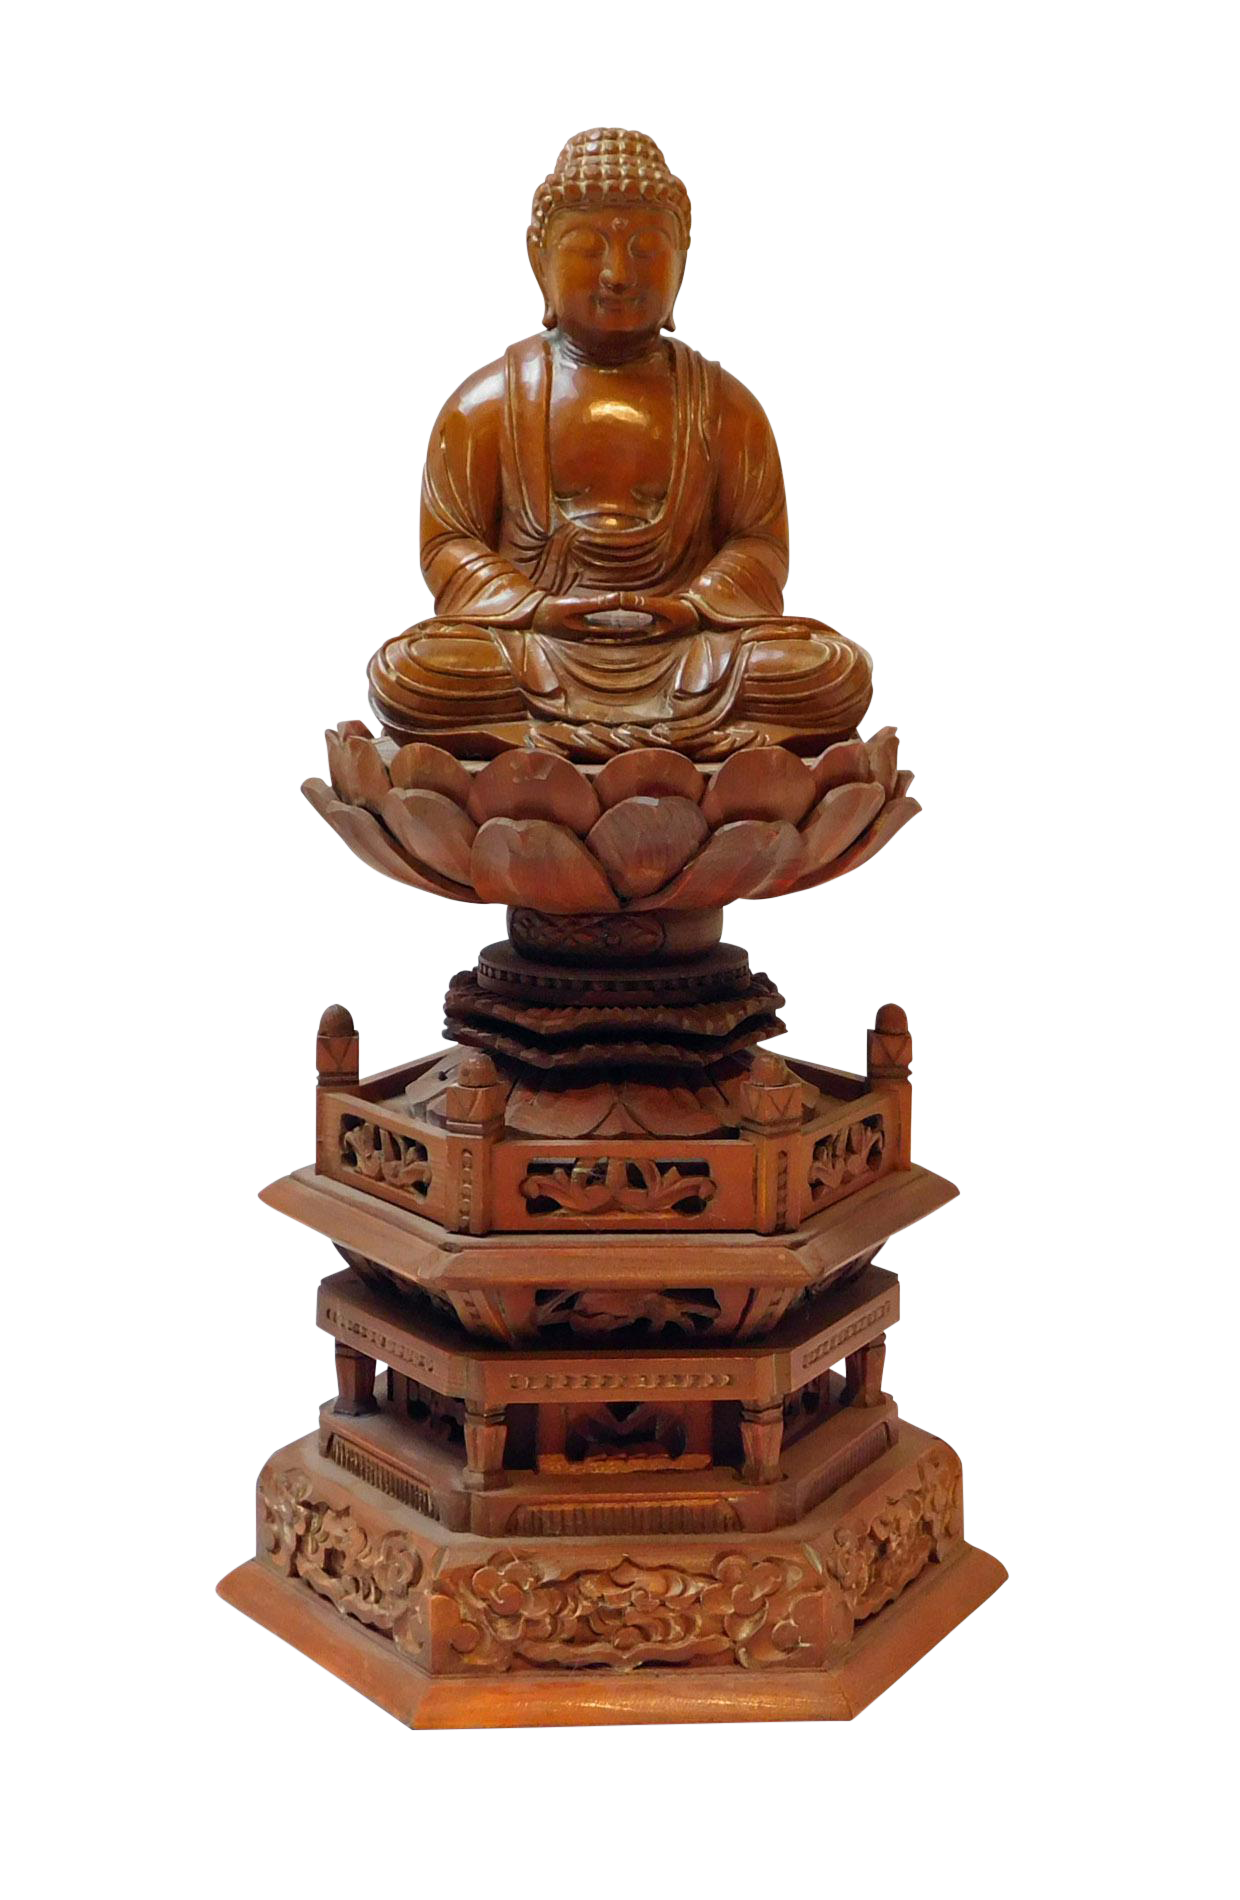 Boxwood Buddha Statue On Tall Lotus Flower Pagoda Base Chairish